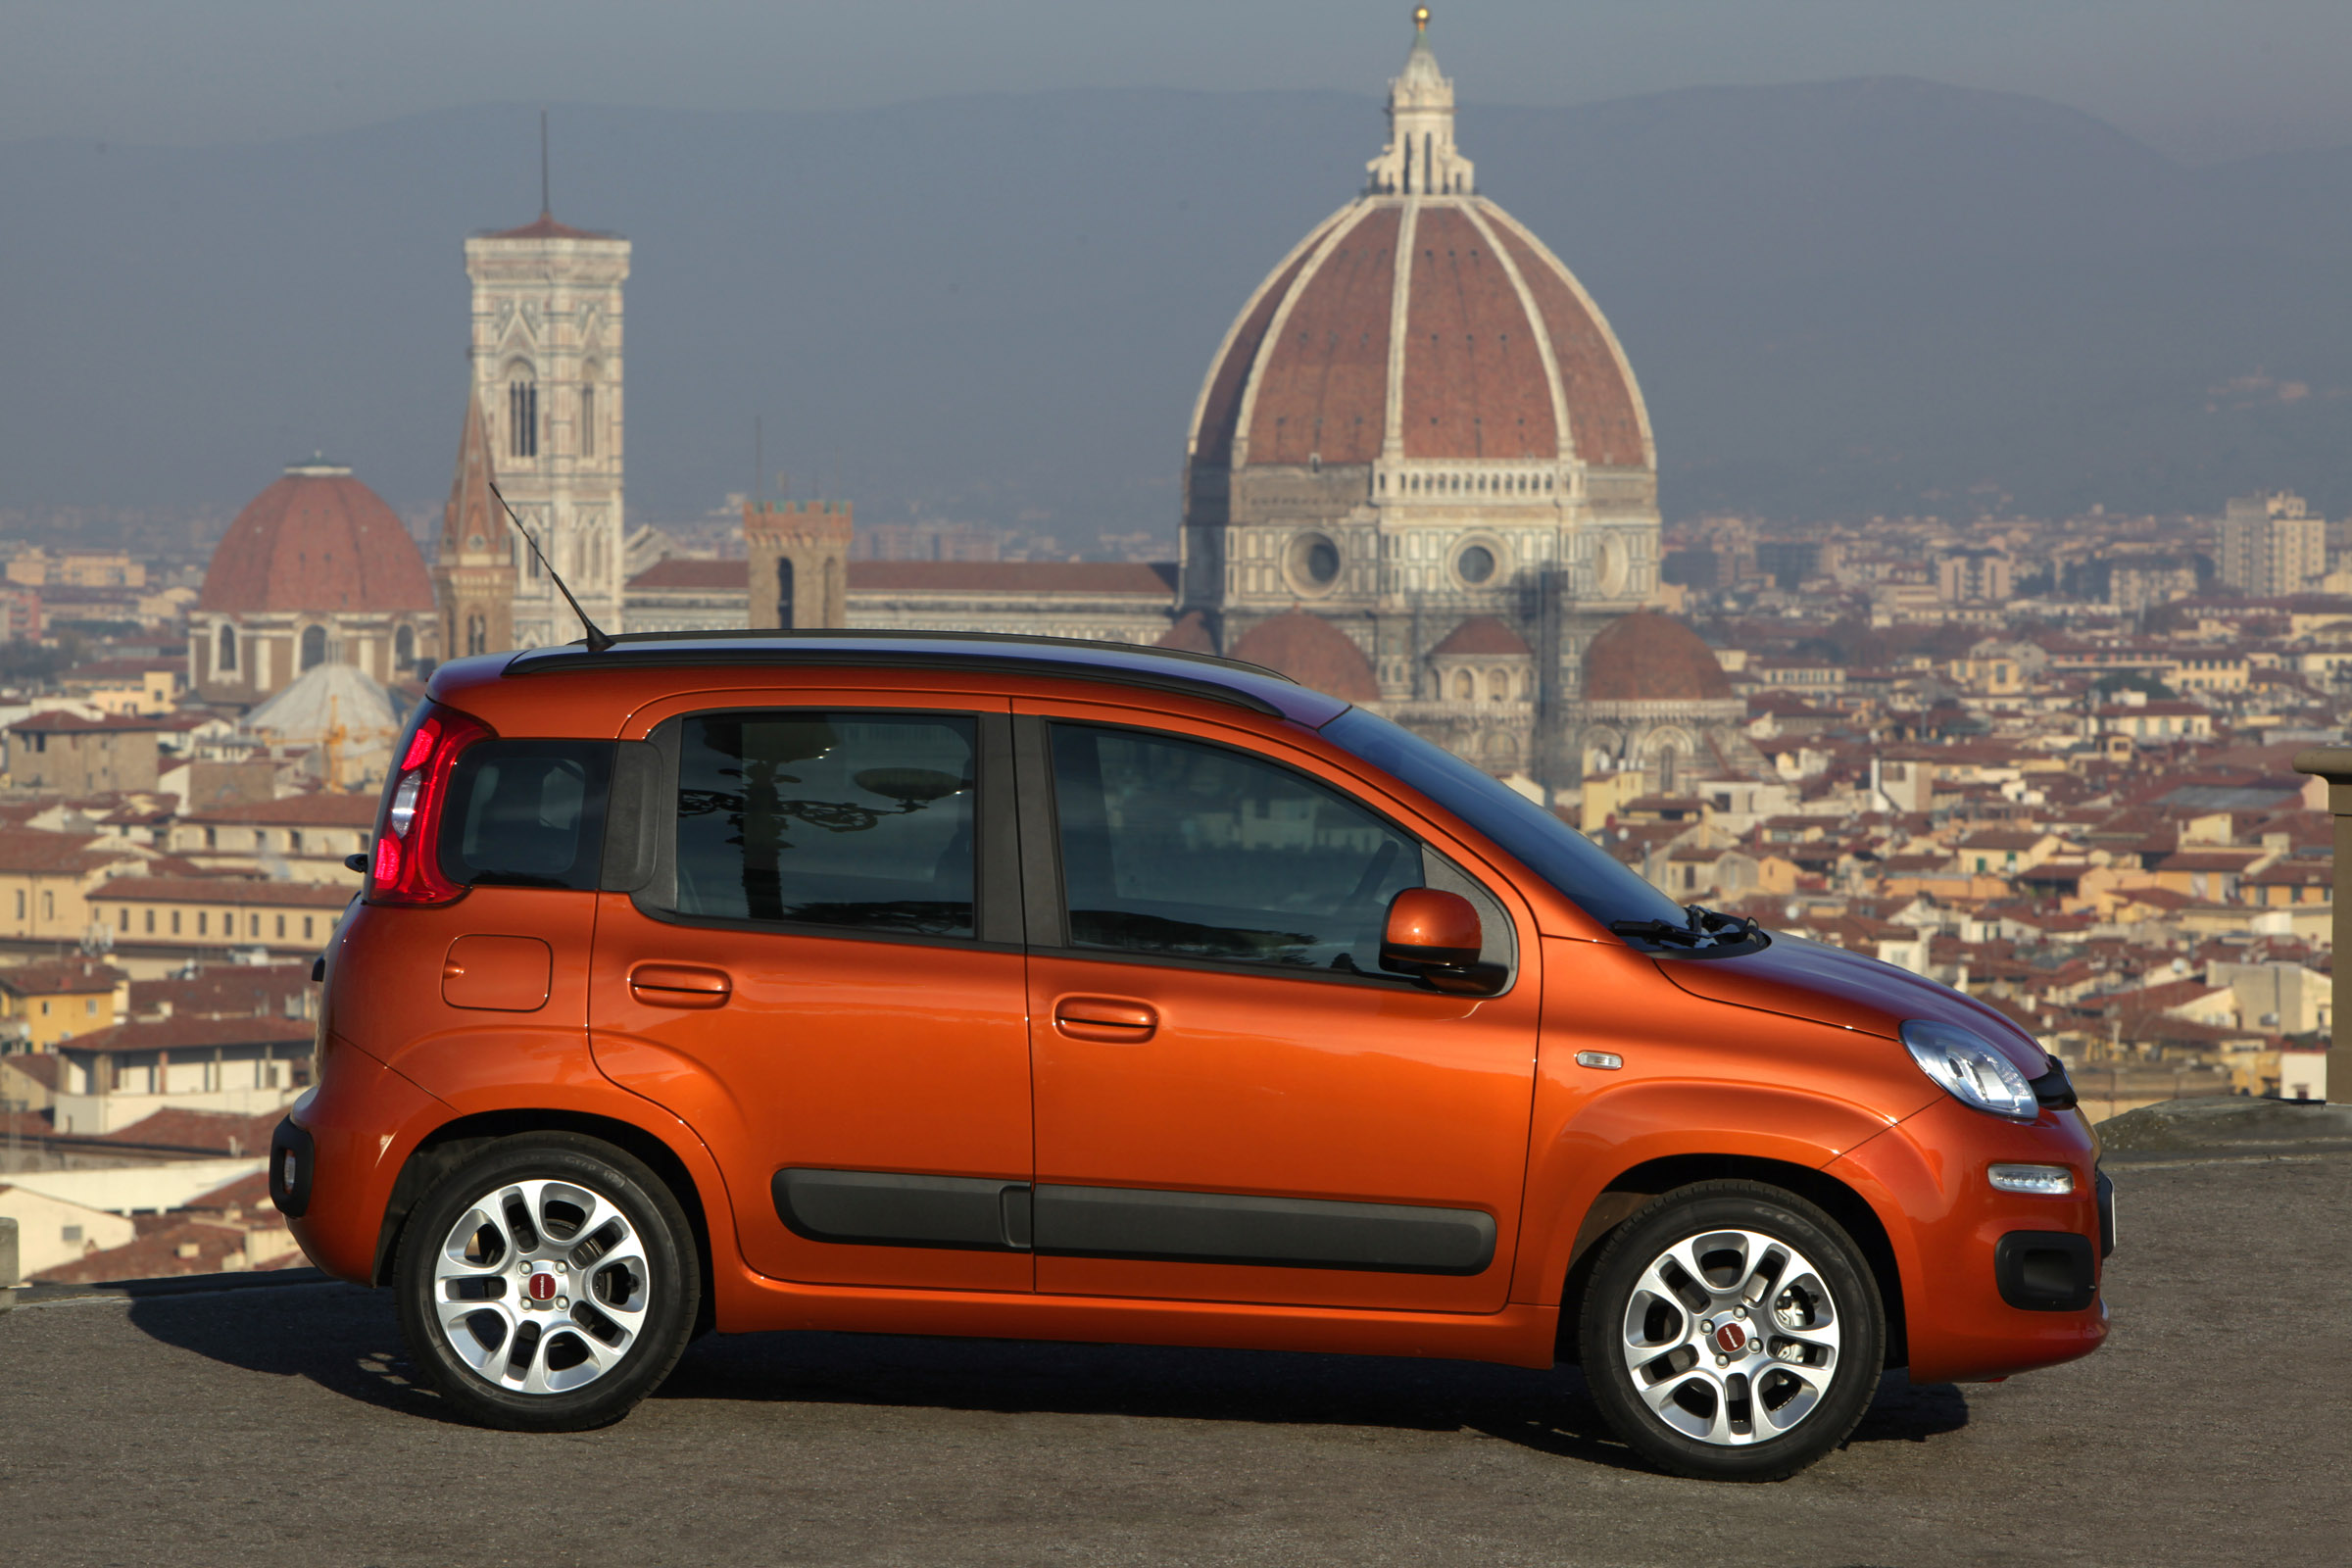 2012 fiat panda price 8900 otr. Black Bedroom Furniture Sets. Home Design Ideas